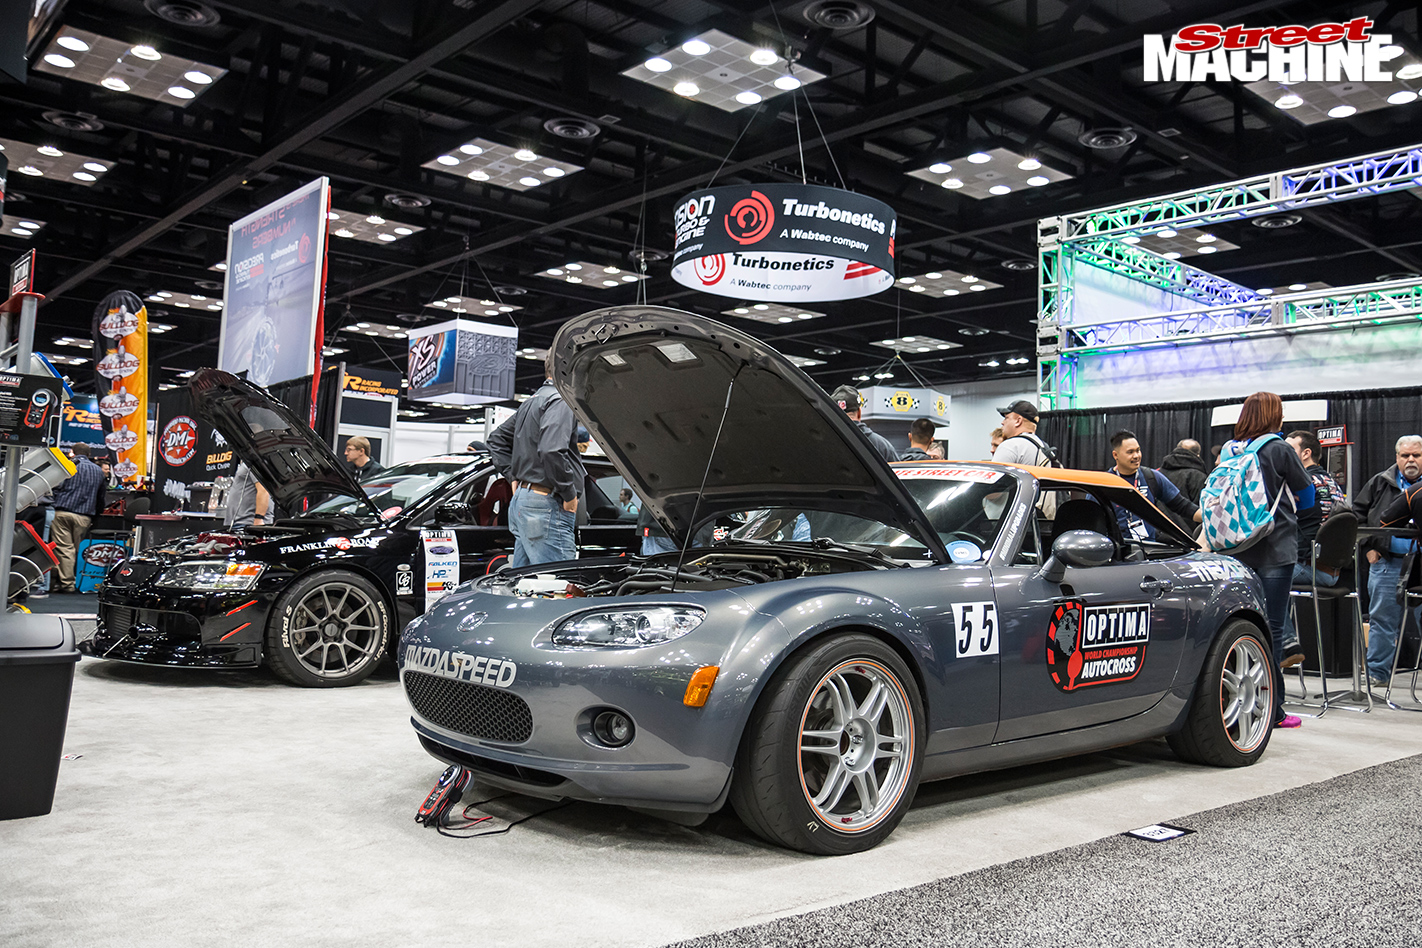 6300-performance -racing -industry -show -mazda -mx5